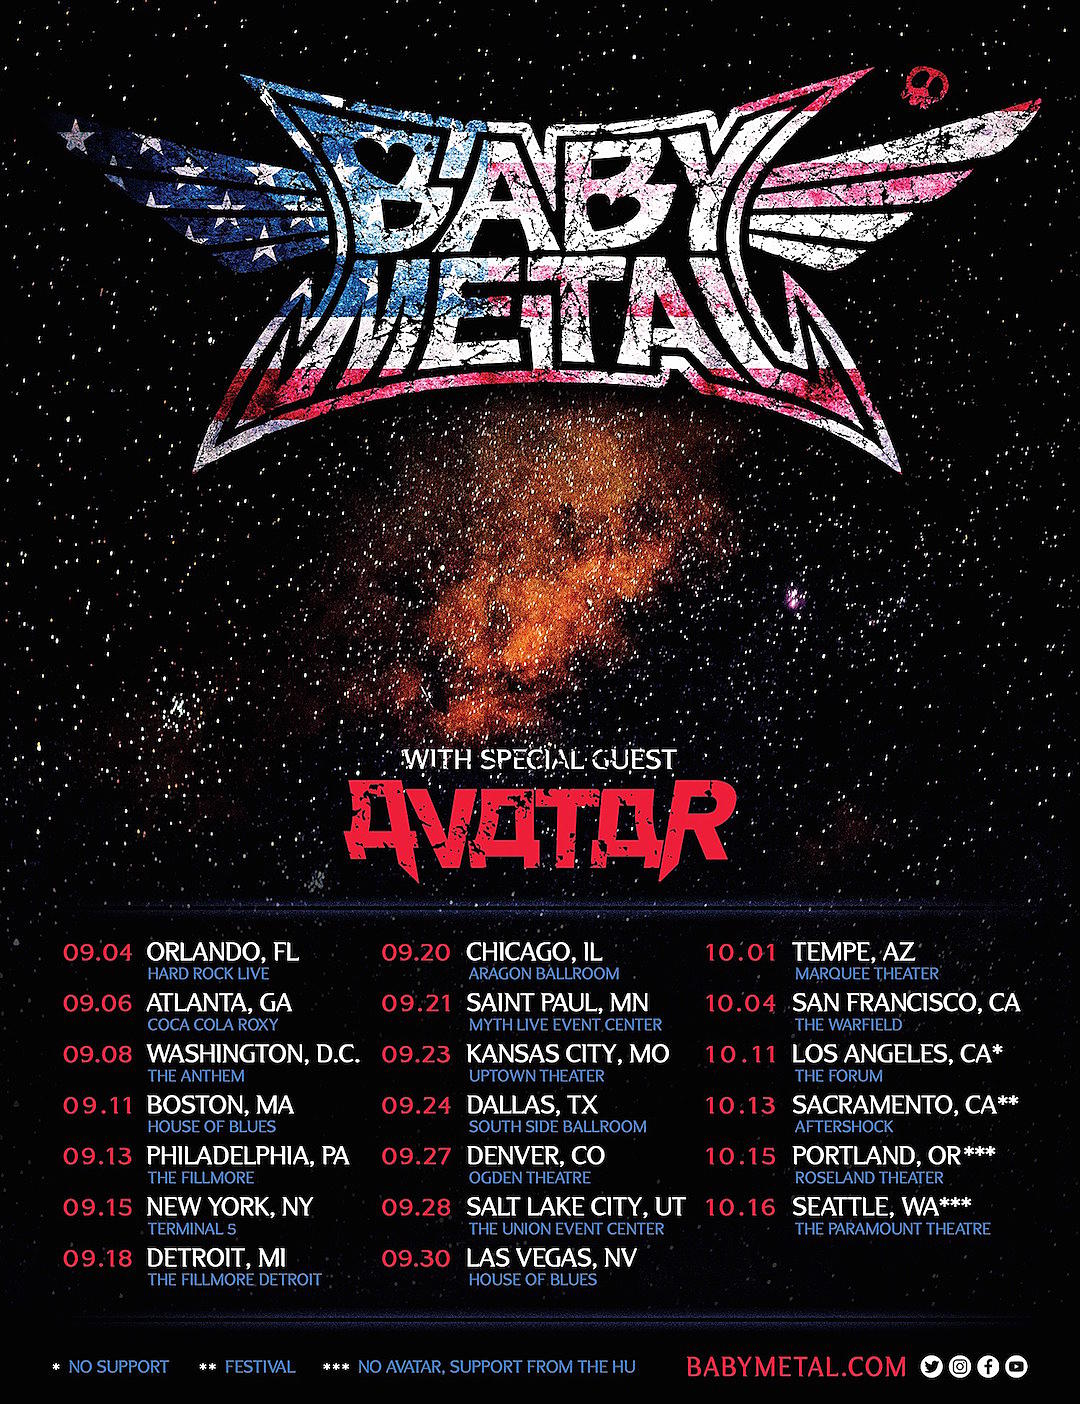 Babymetal Tour 2020.Babymetal Announce 2019 U S Tour With Avatar